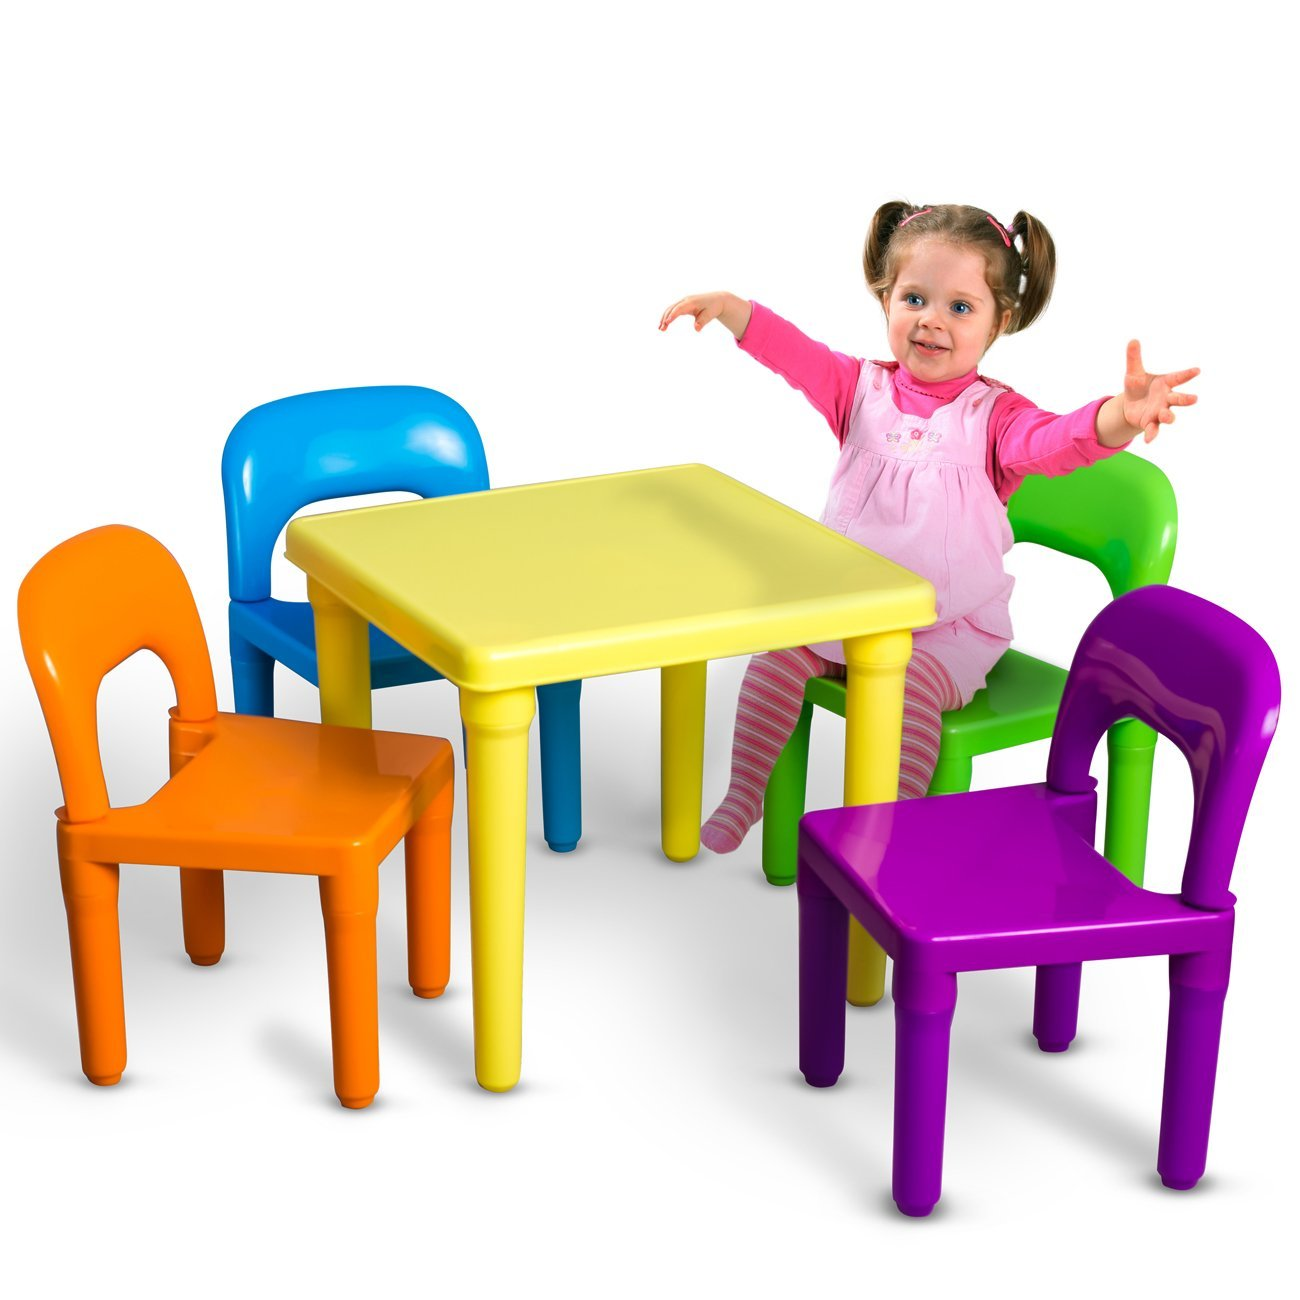 Plastic Table And Chairs For Kids Total Fab Children 39s Plastic Table And Chair Sets